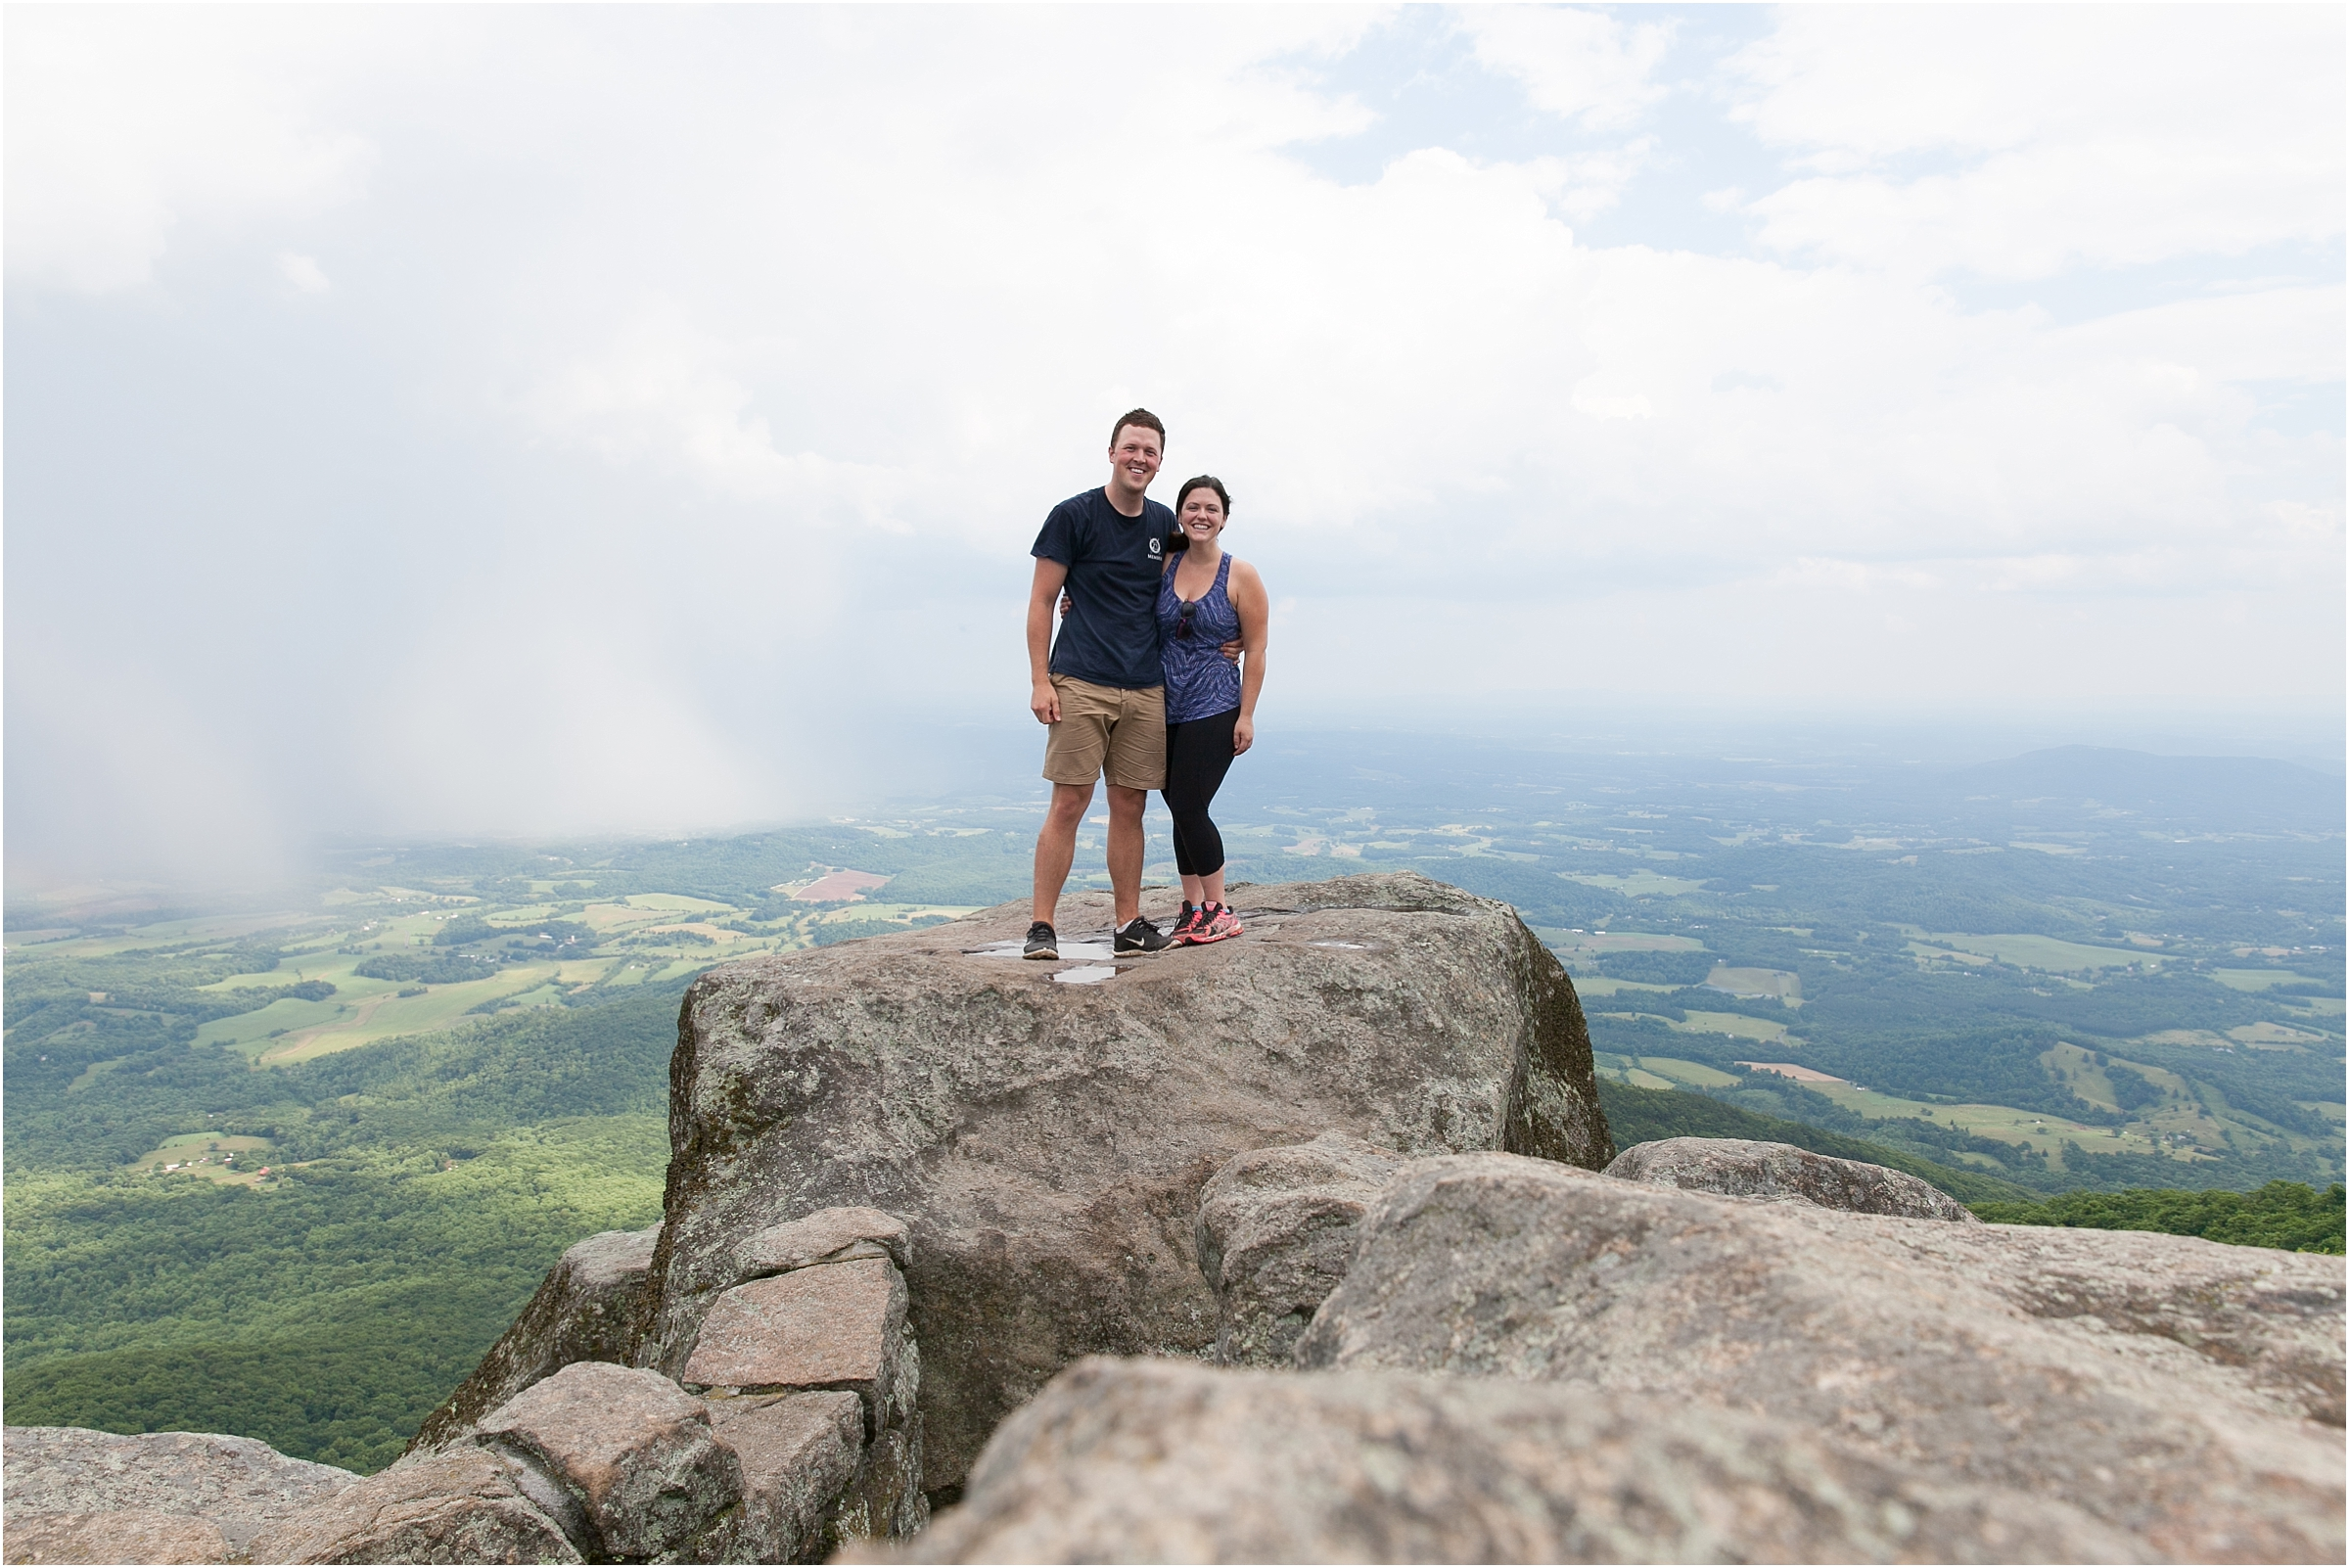 peaks of otter wedding in bedford virginia destination wedding photographer travel wedding photographer